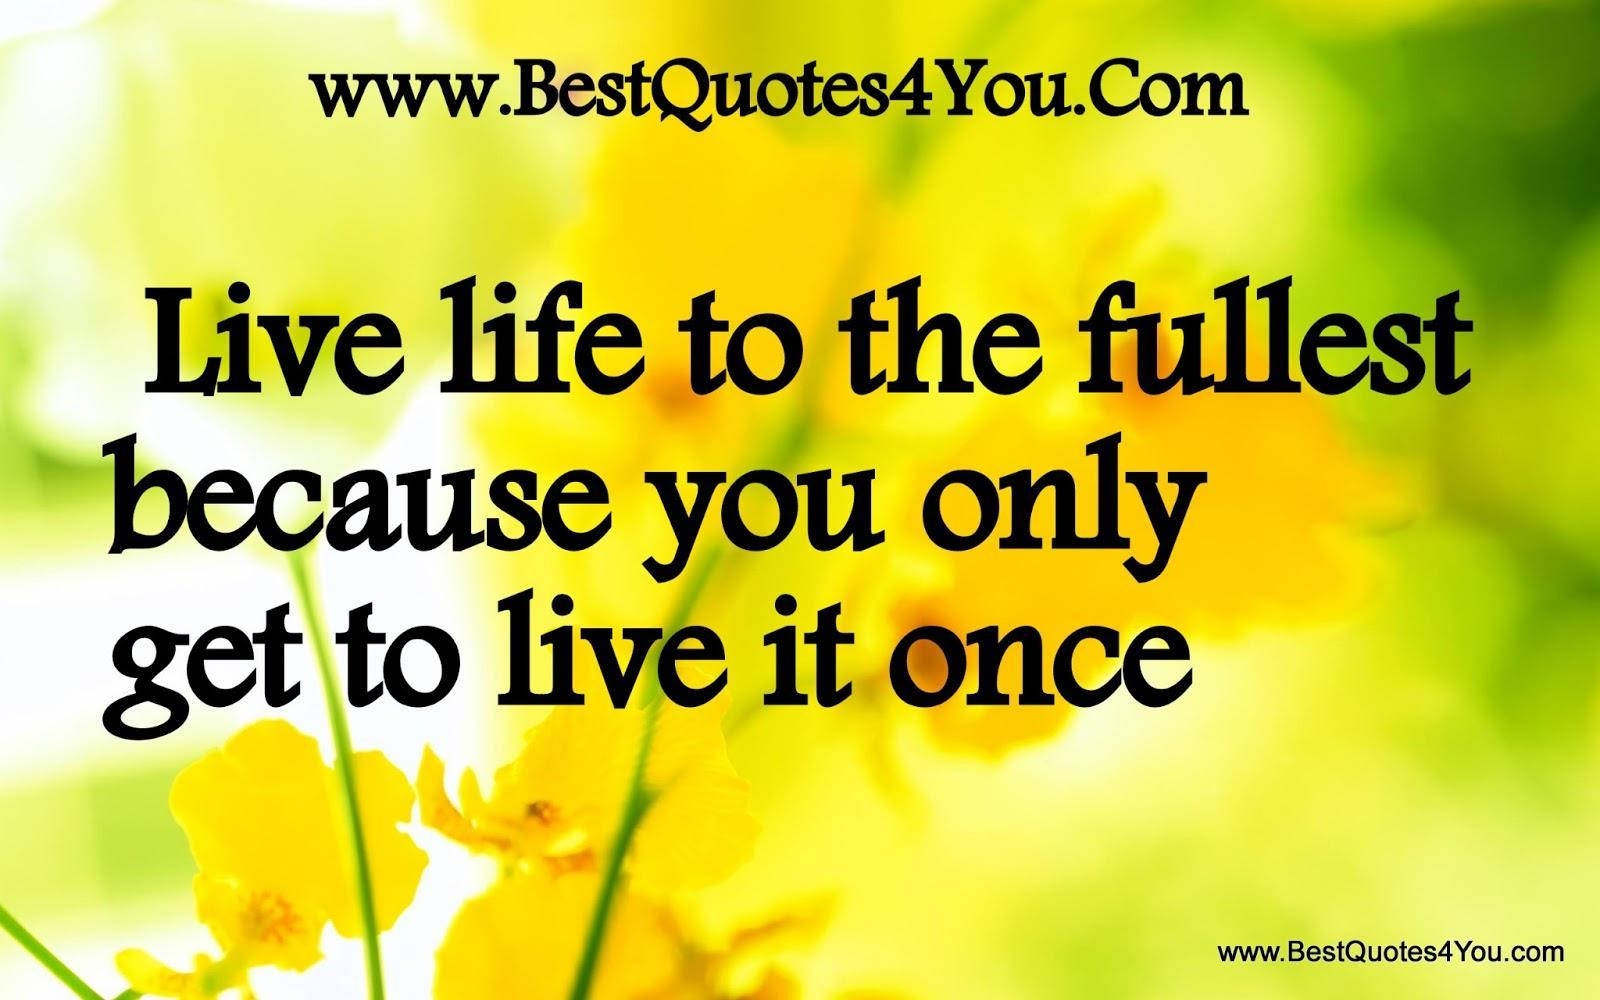 Live life to the fullest because you only get to live it once